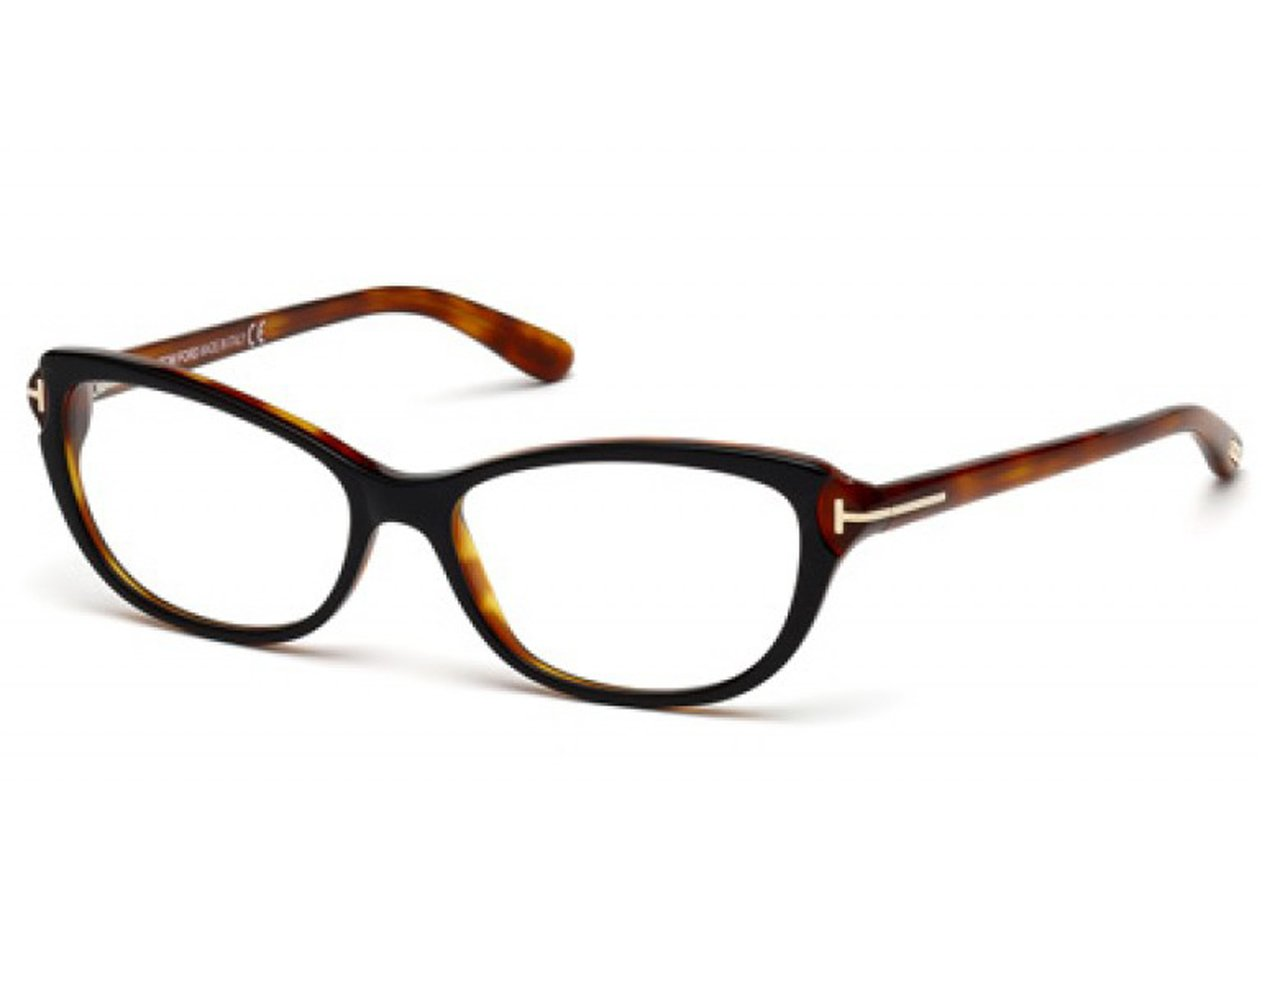 Tom Ford FT5286-005-52